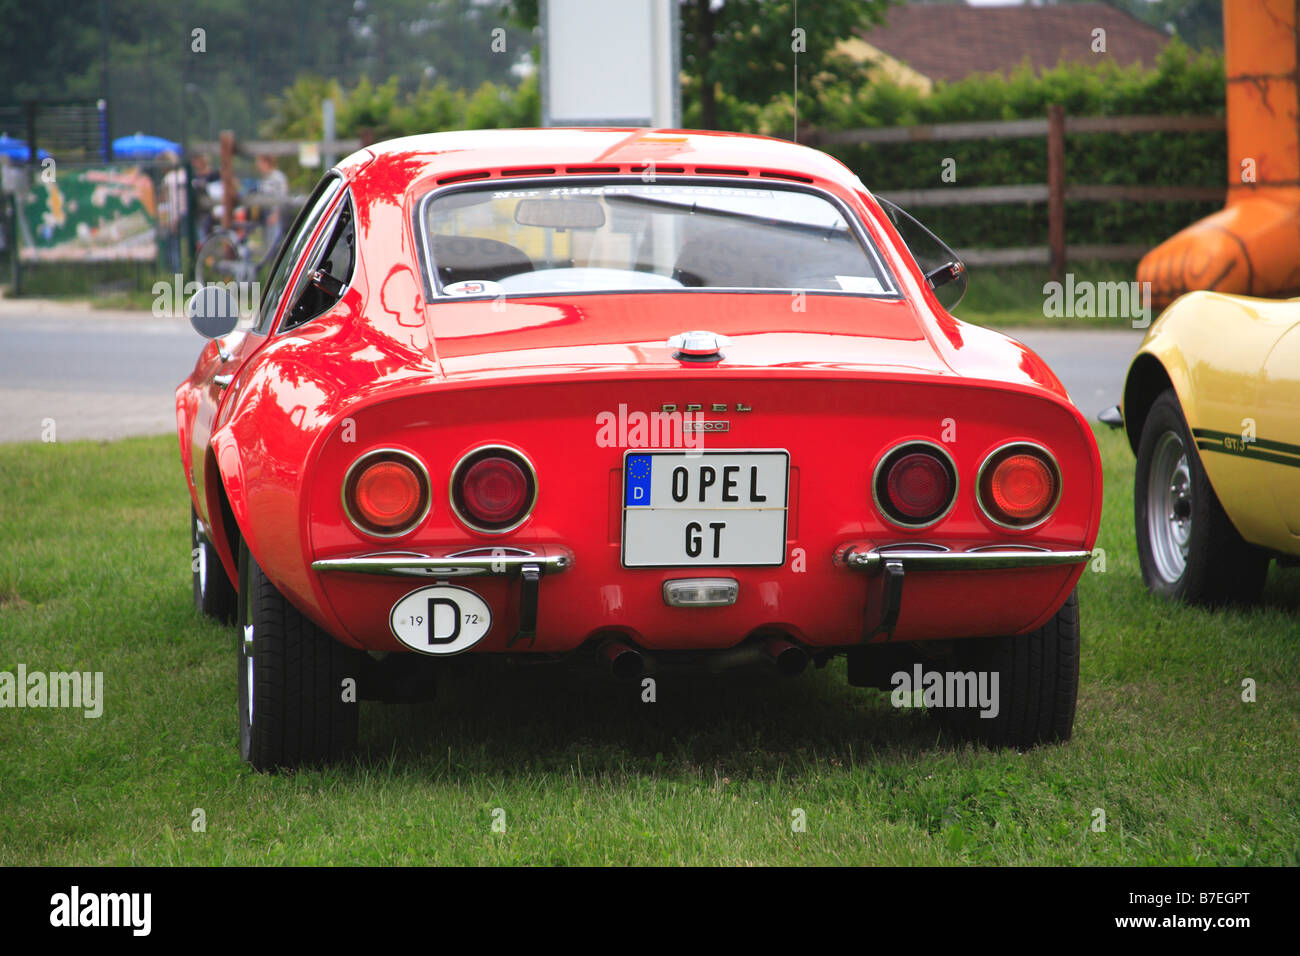 1970 1972 Stockfotos & 1970 1972 Bilder - Alamy